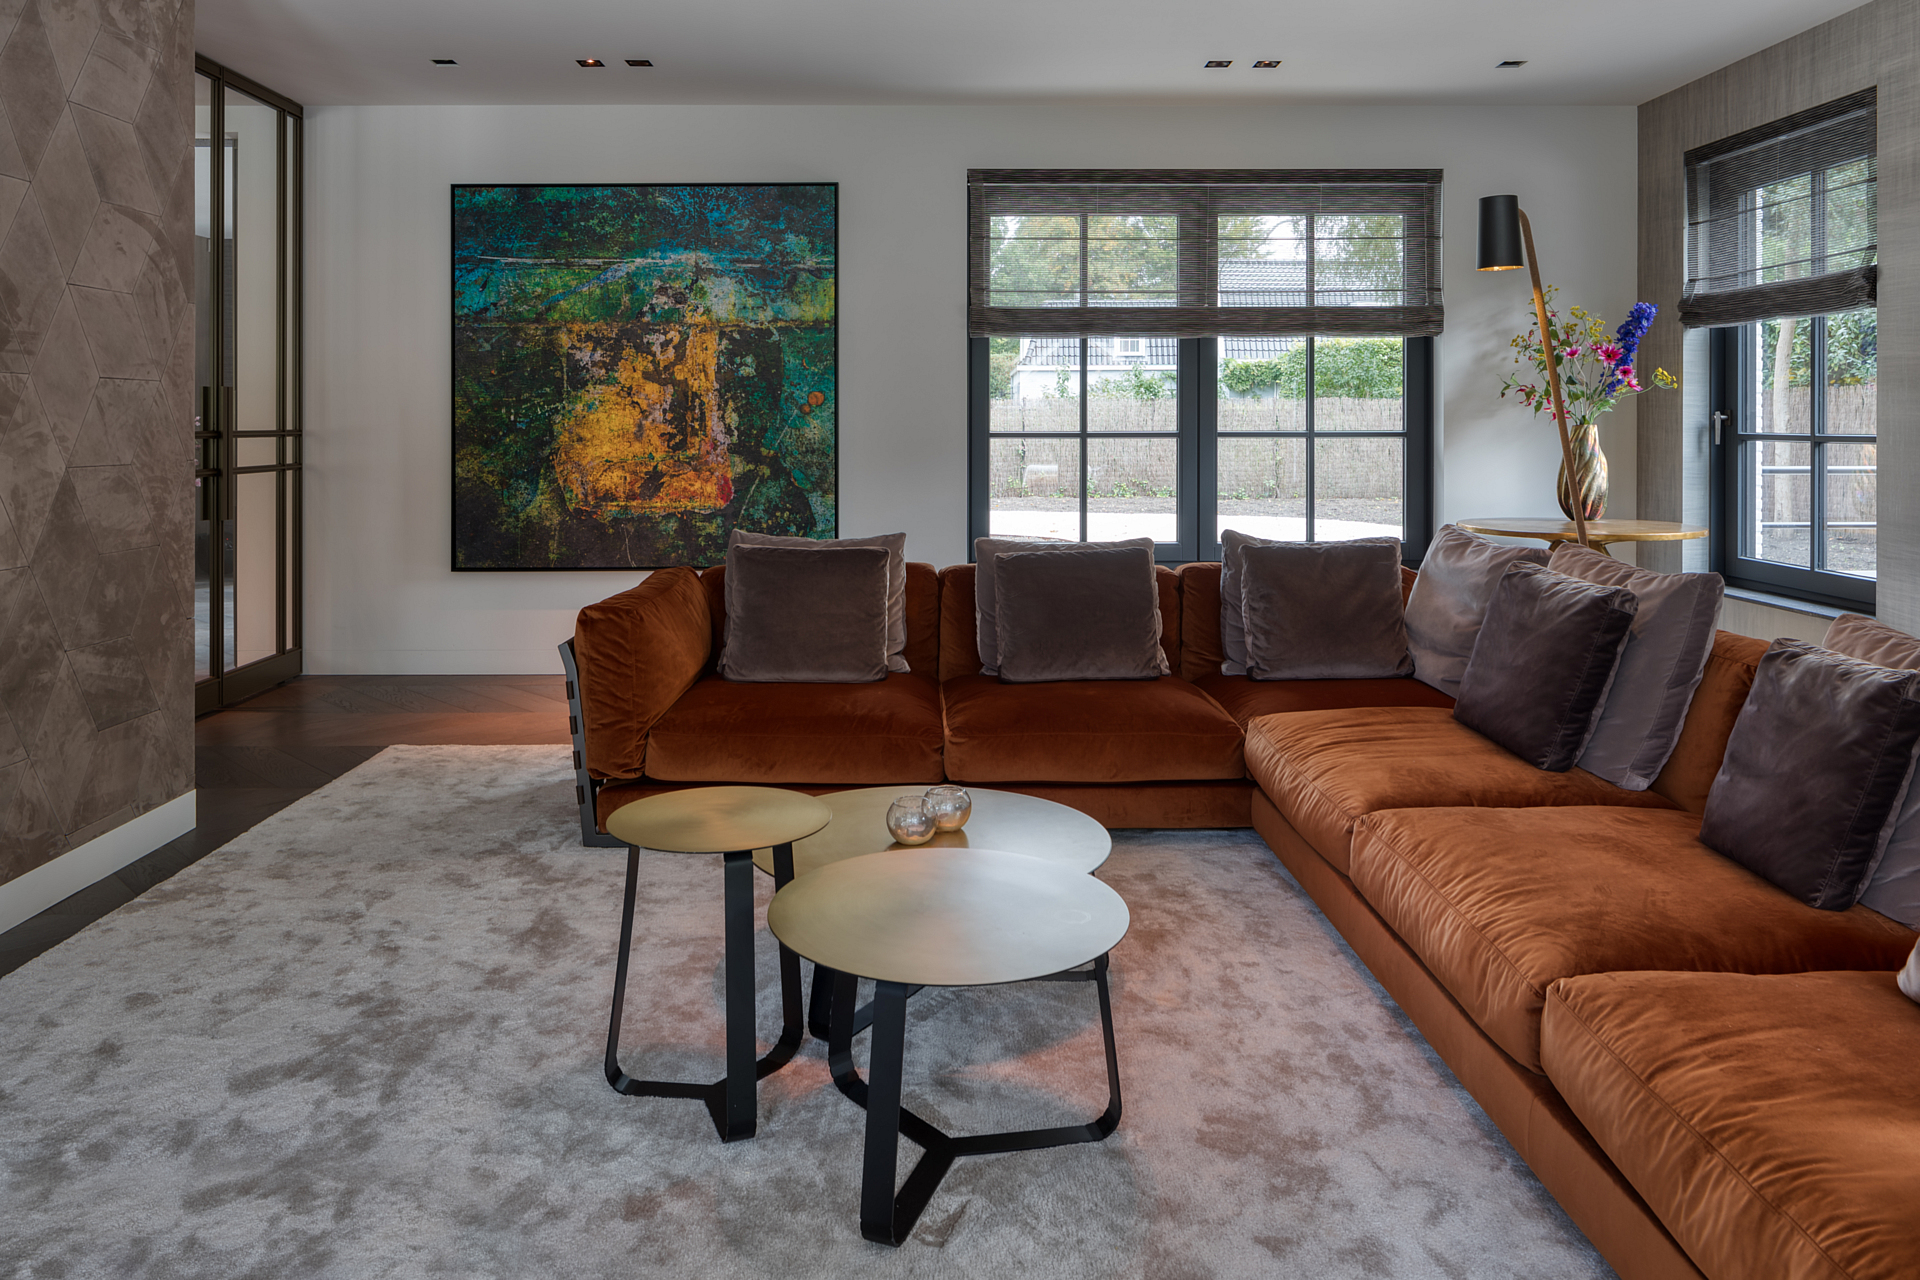 living room with large brown corner sofa on a large soft grey rug, leather and artworks adorn the walls